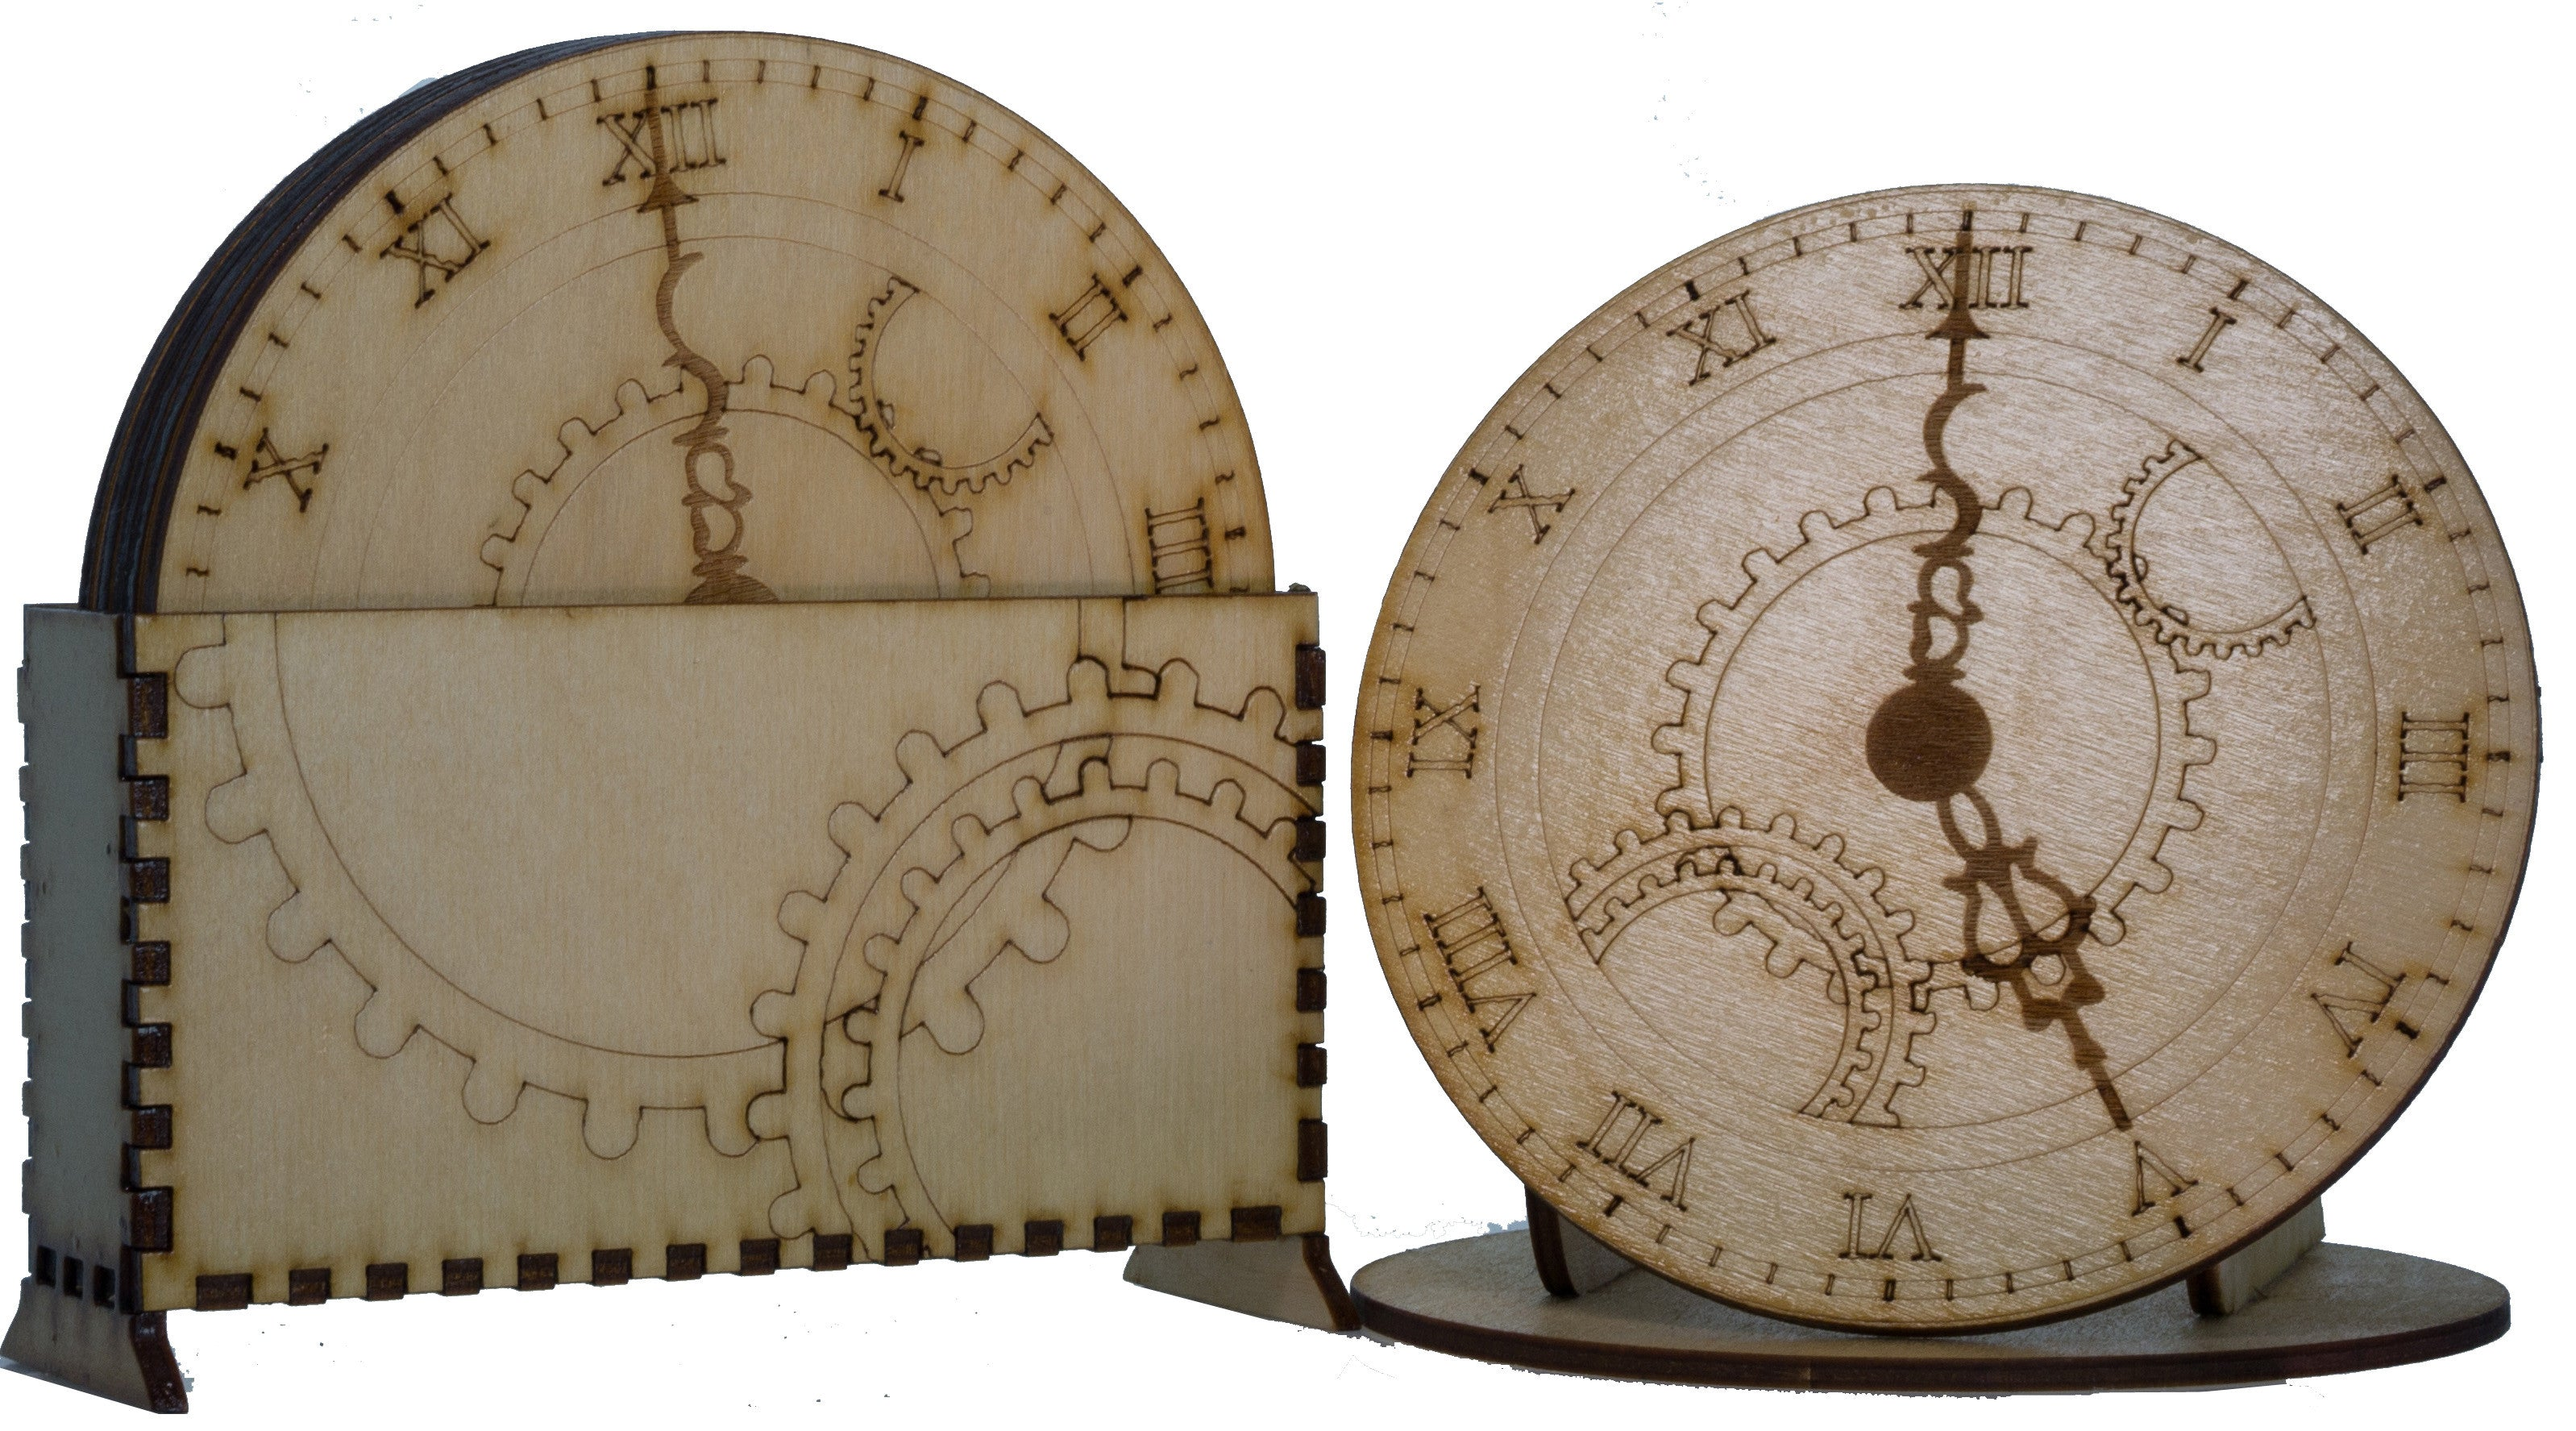 5 O'Clock Gears Coaster Set